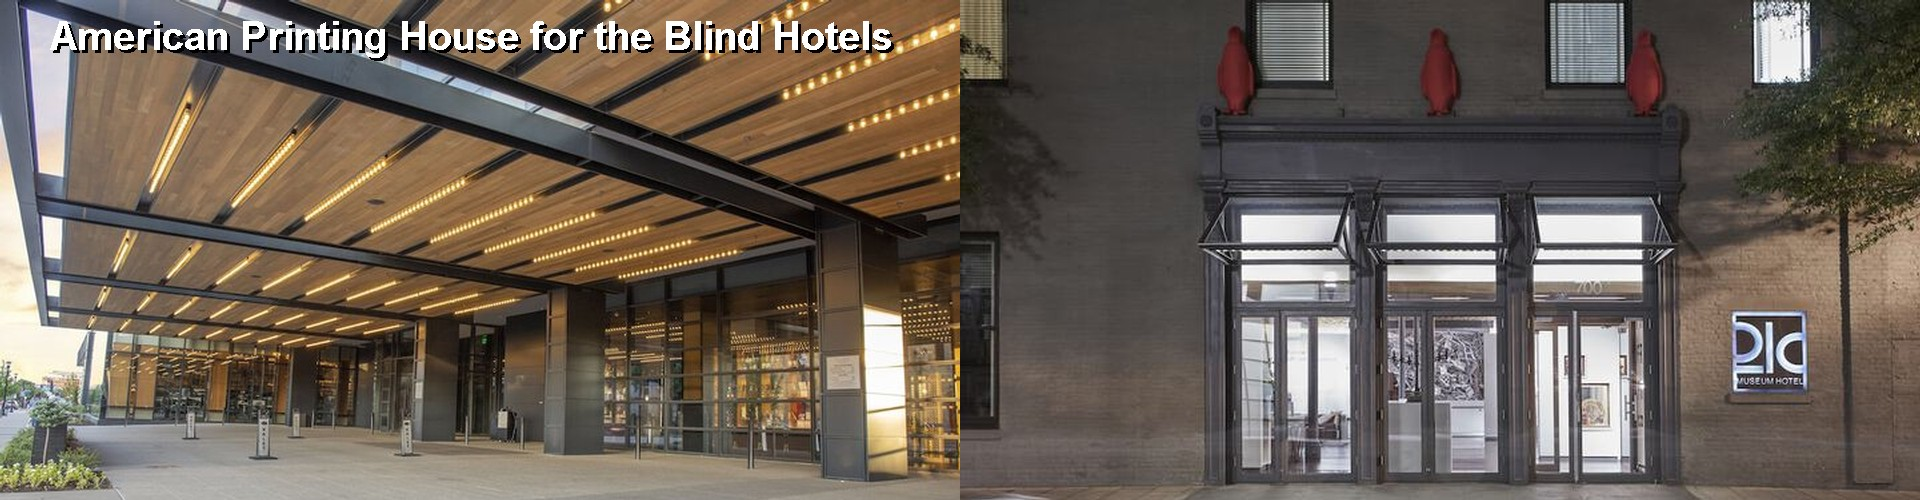 5 Best Hotels near American Printing House for the Blind